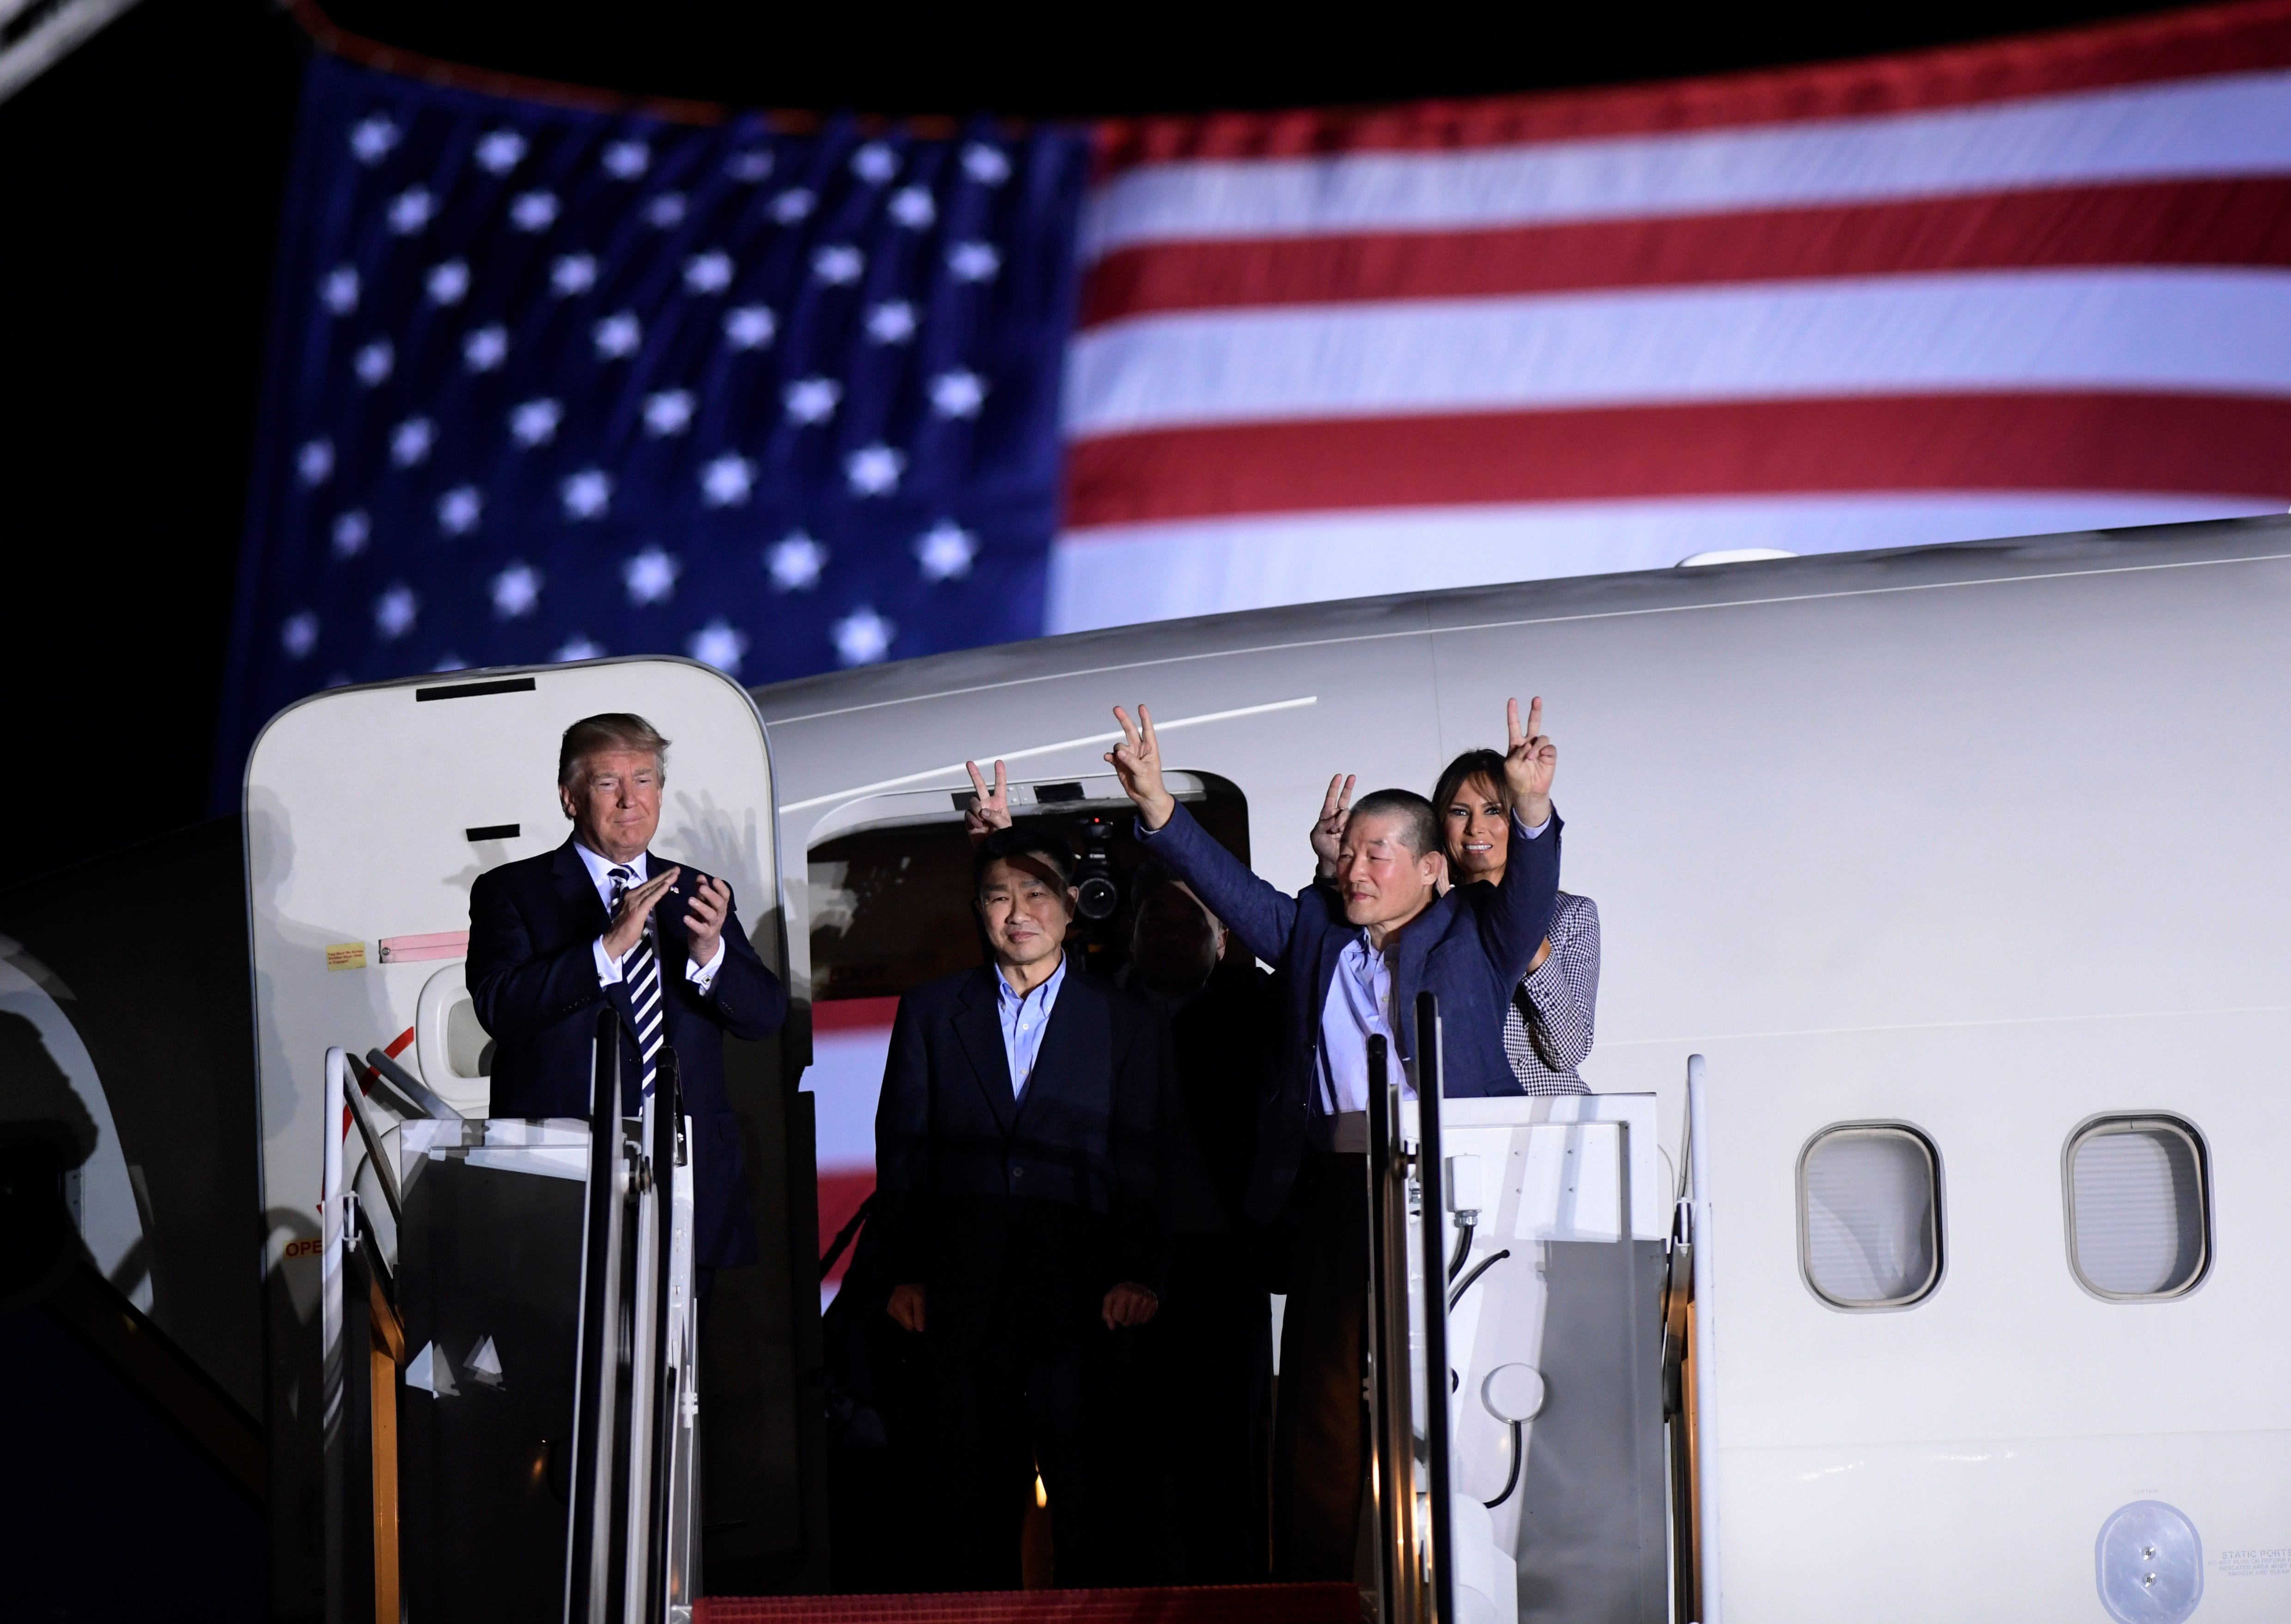 President Trump, from left, greets Tony Kim, Kim Hak Song, seen in the shadow, and Kim Dong Chul, three Americans detained in North Korea for more than a year, as they arrive at Andrews Air Force Base in Md., May 10, 2018. First lady Melania Trump al